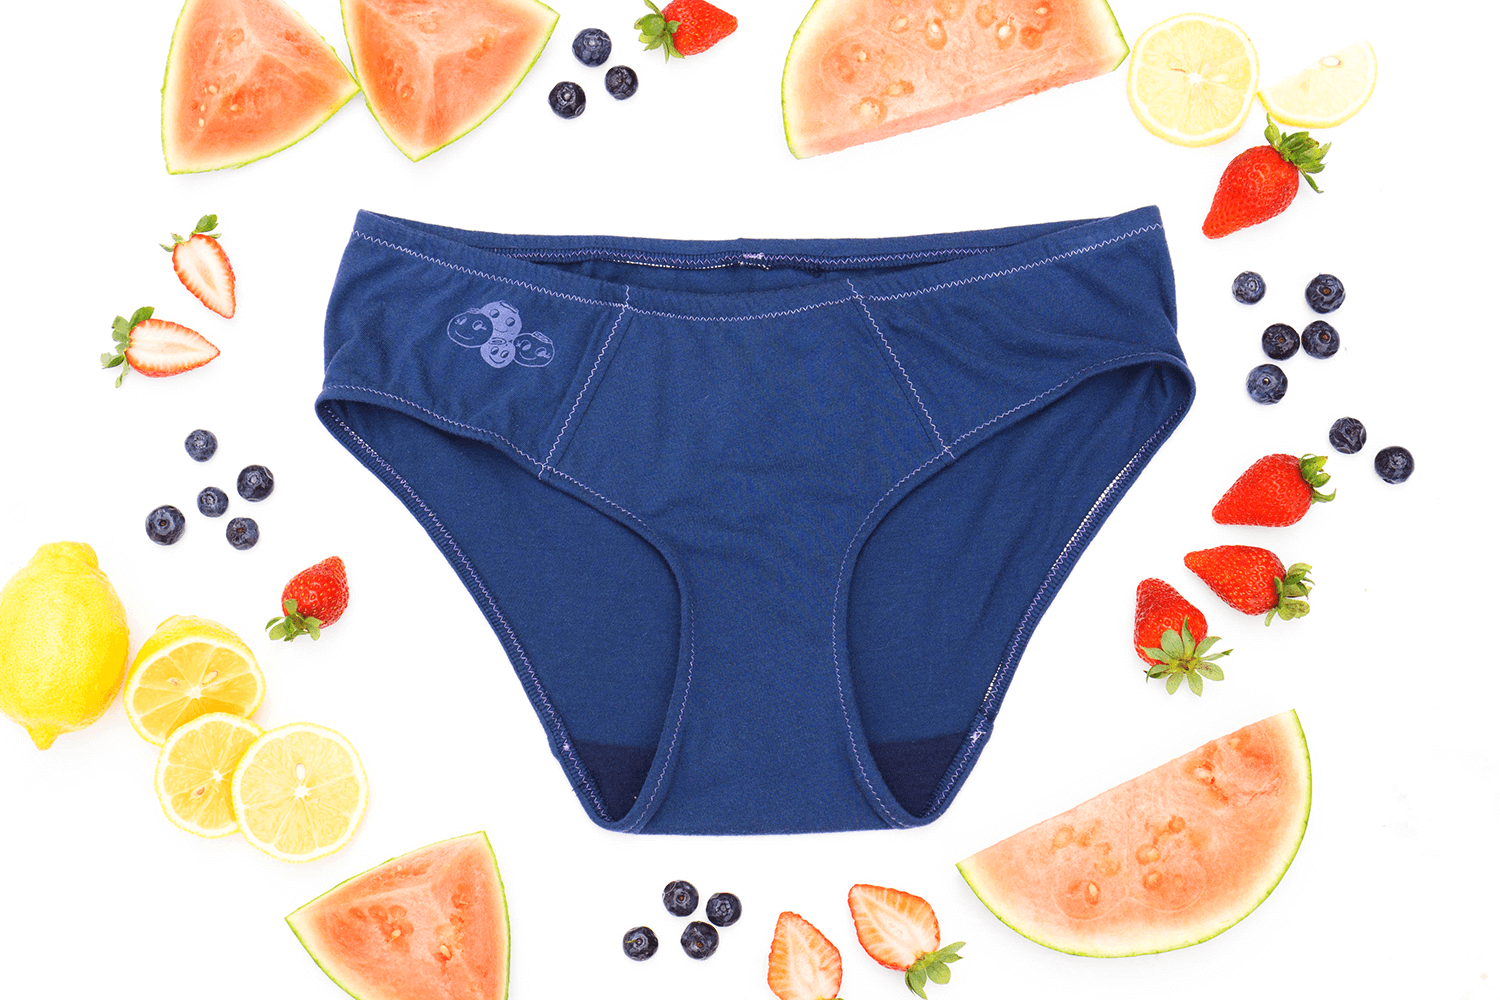 Blueberry Handmade Underwear by La Vie en Orange